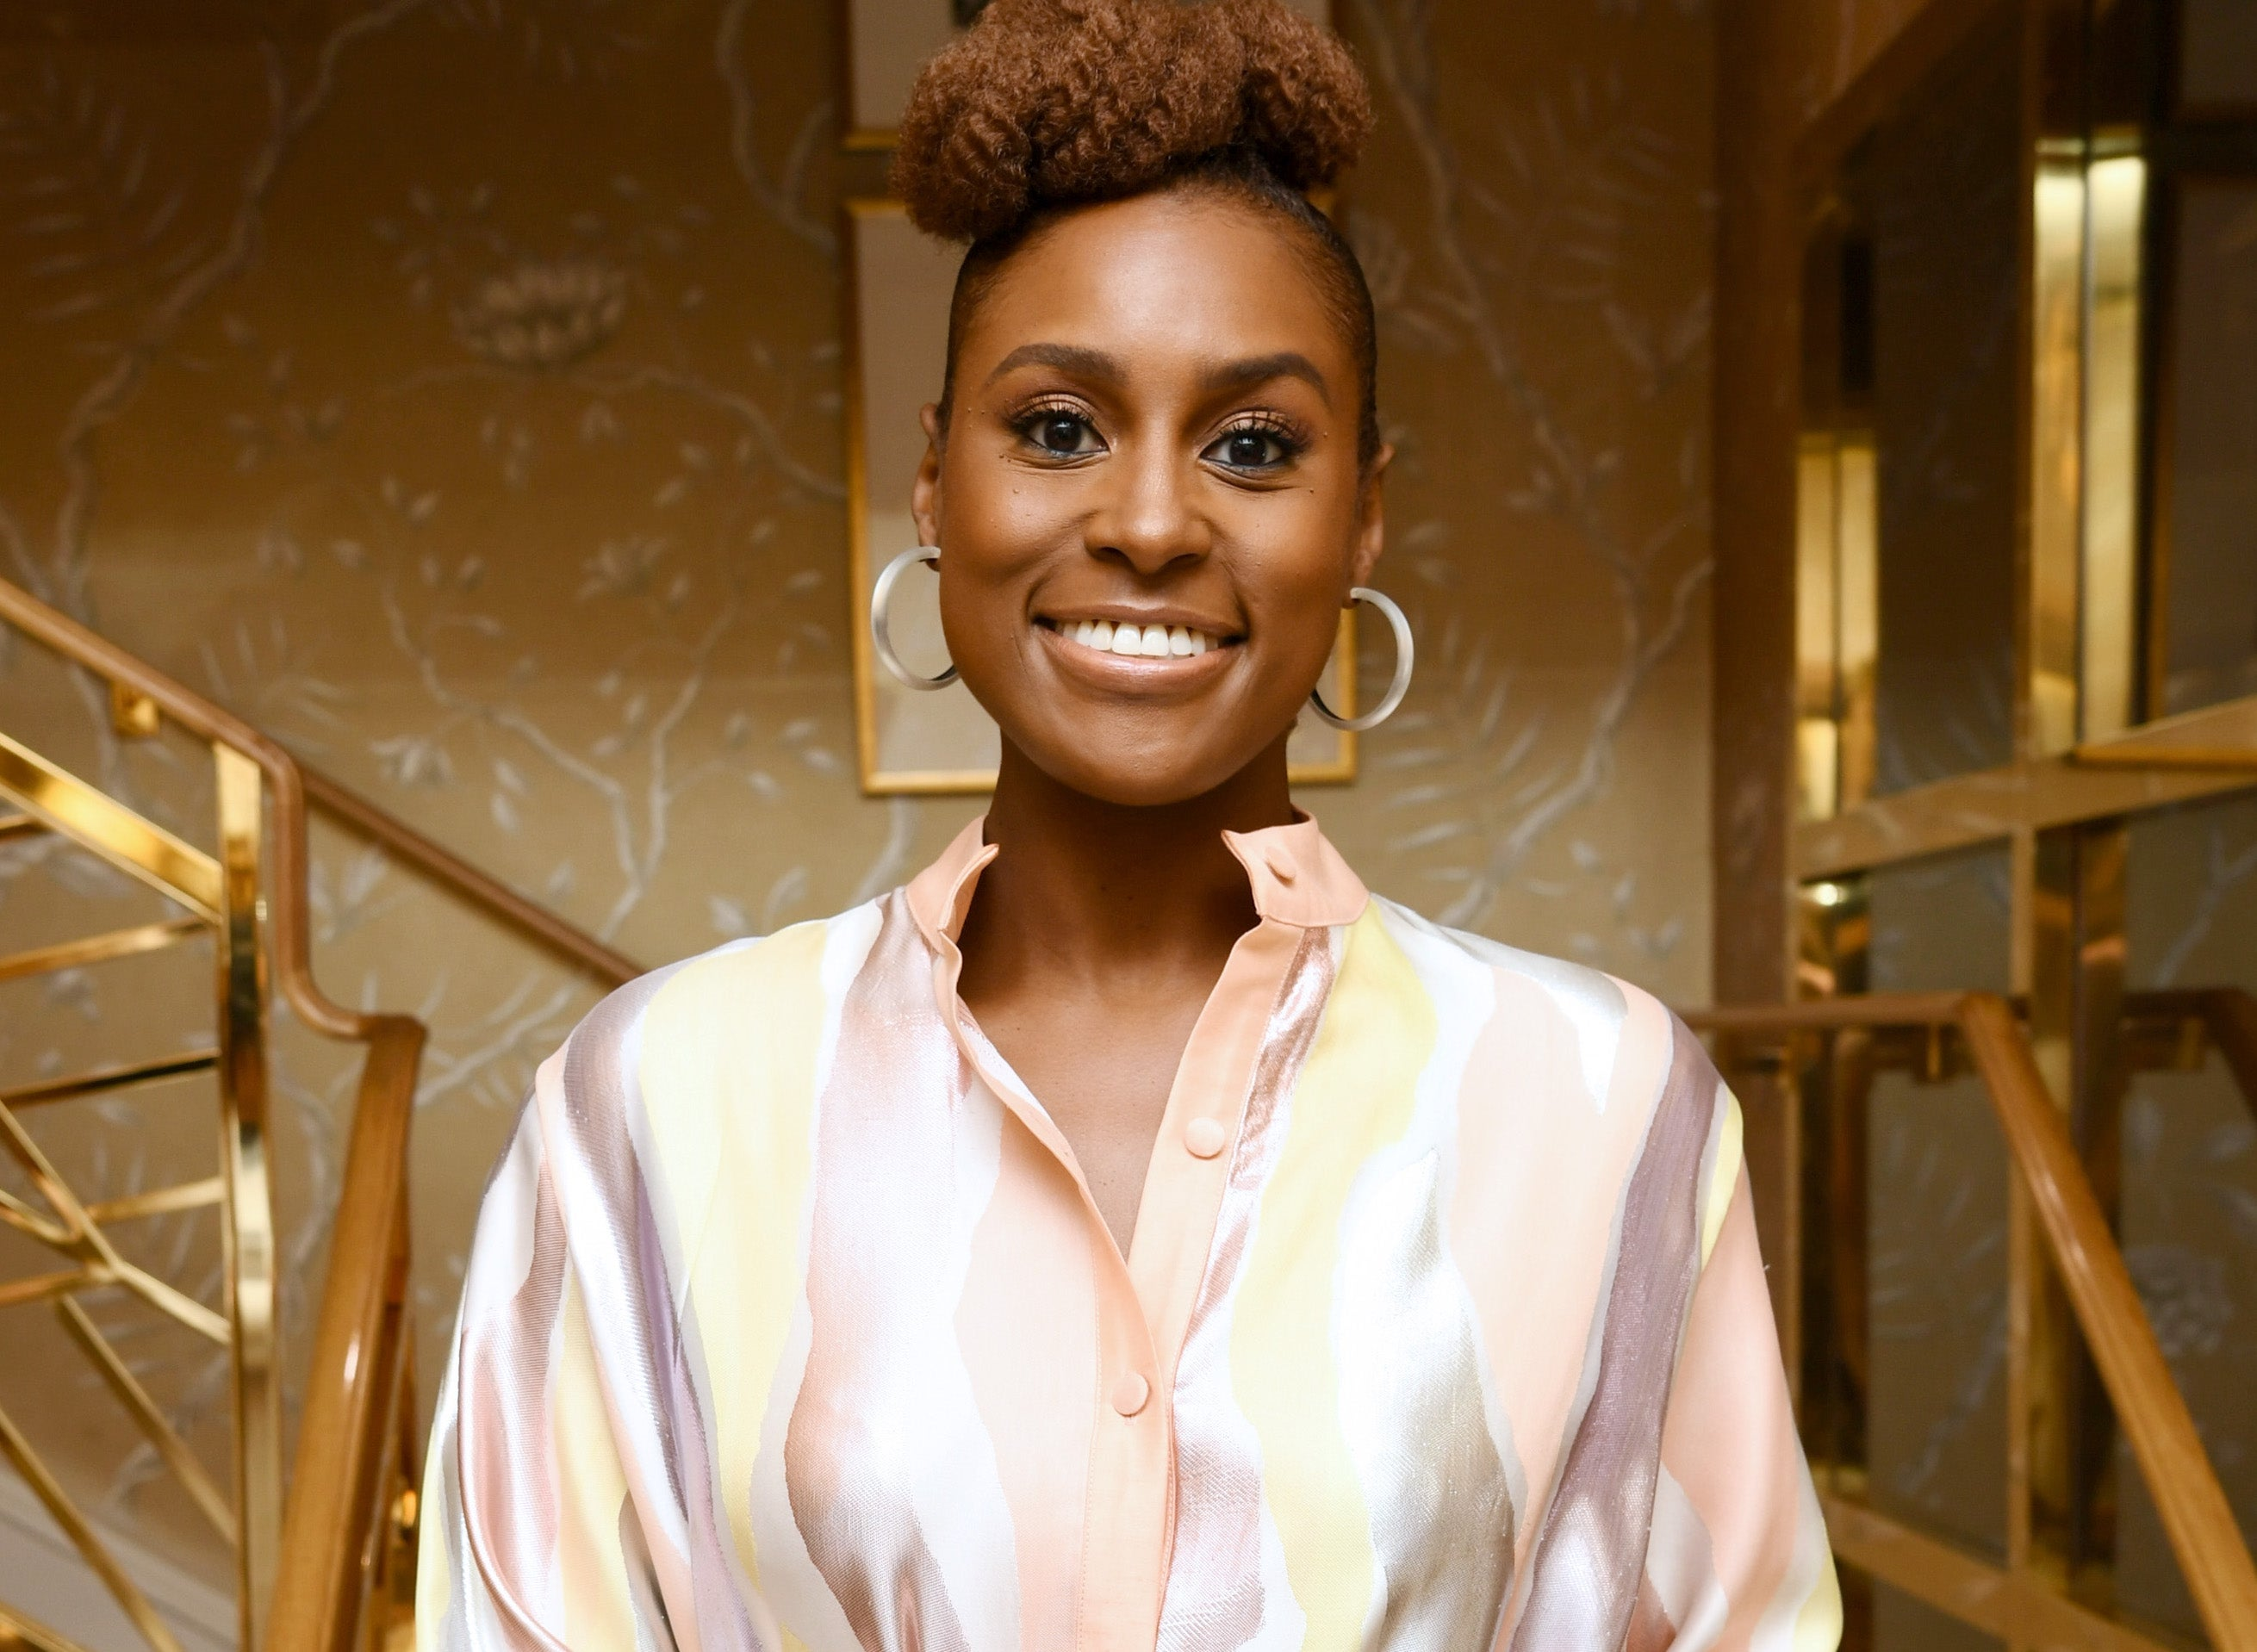 Issa Rae Is Becoming An 'American Princess' With The Help Of Two Black Women